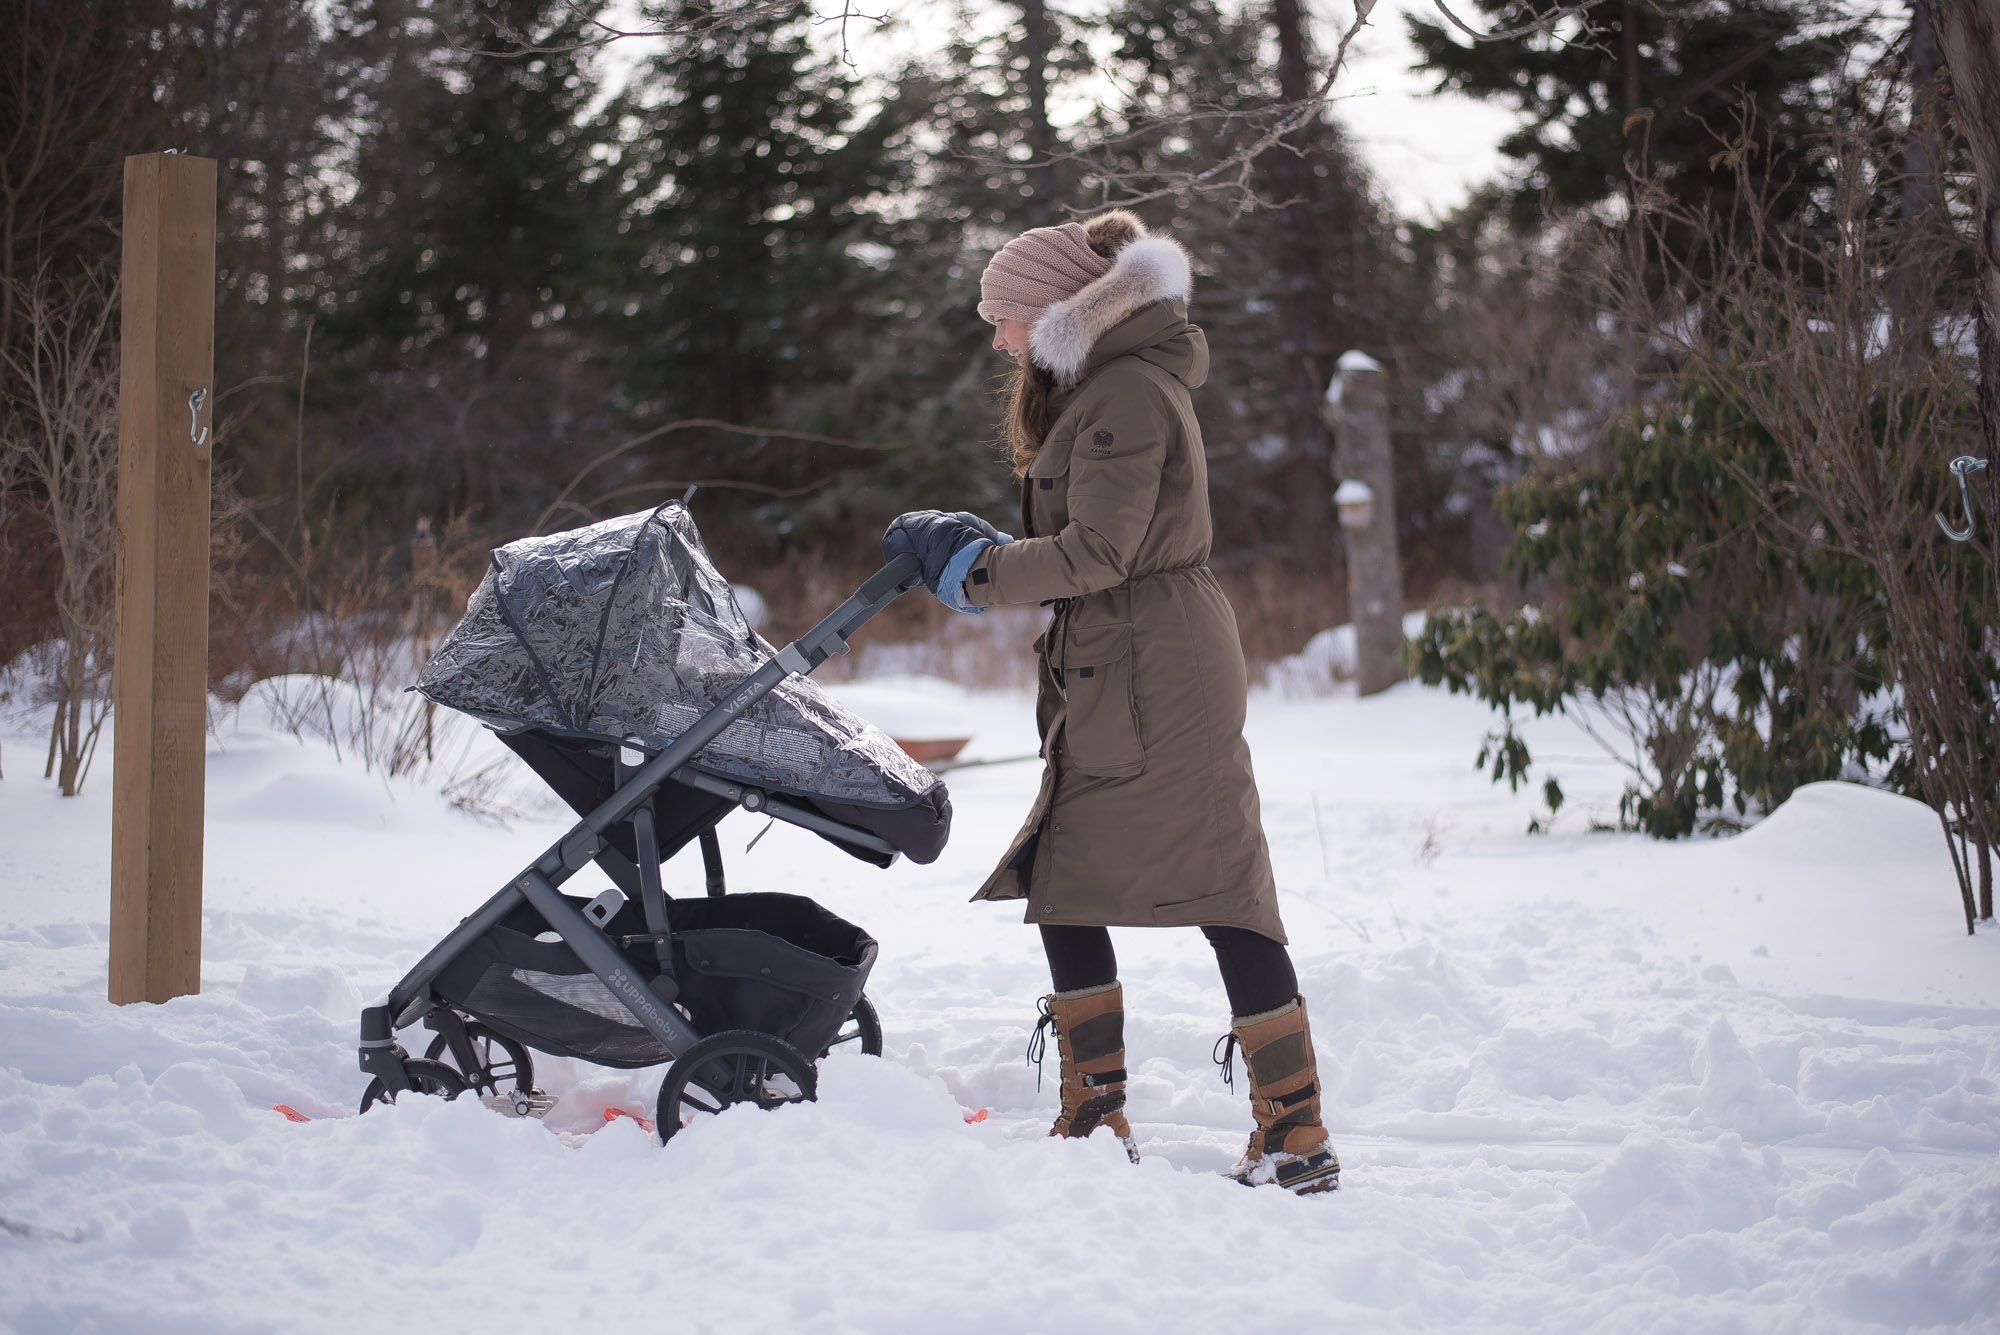 My Top 5 Items To Make Your Stroller Winter Friendly